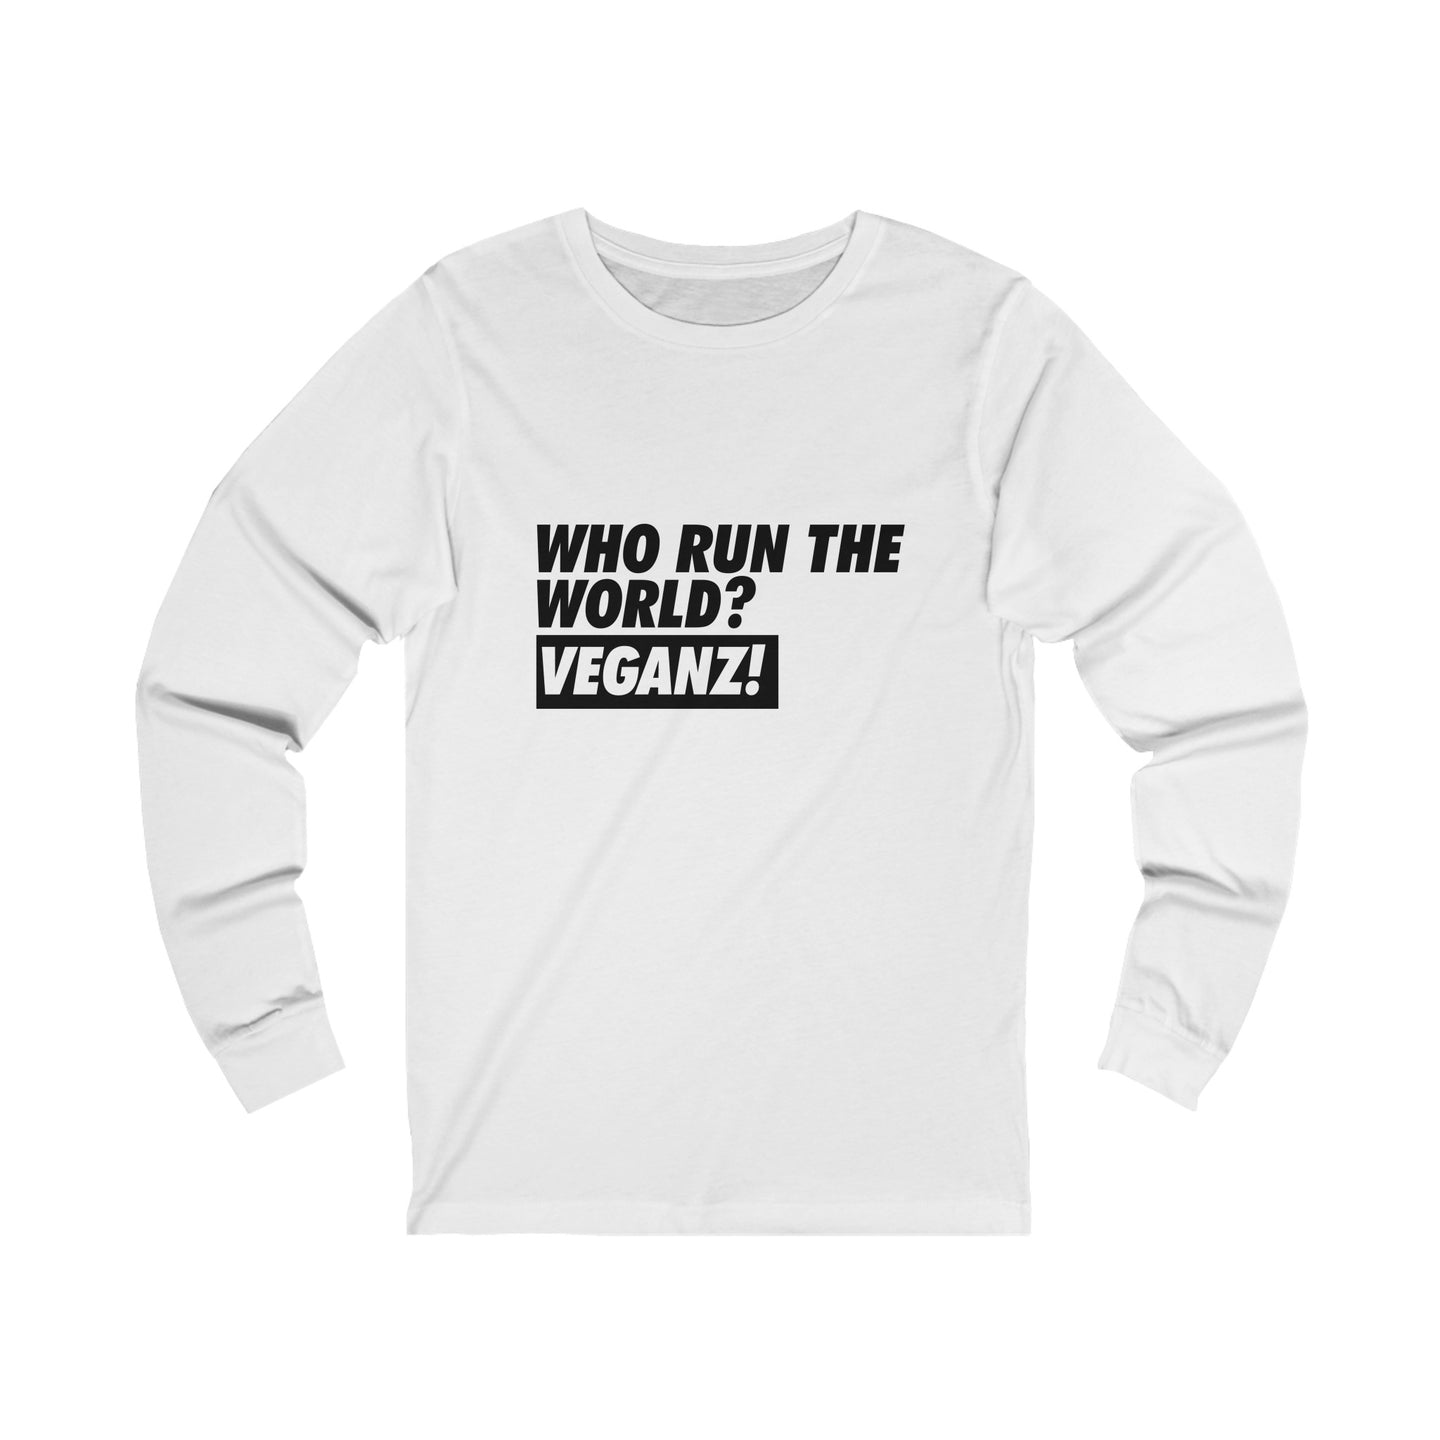 Veganz Run The World Unisex Long Sleeve T-Shirt